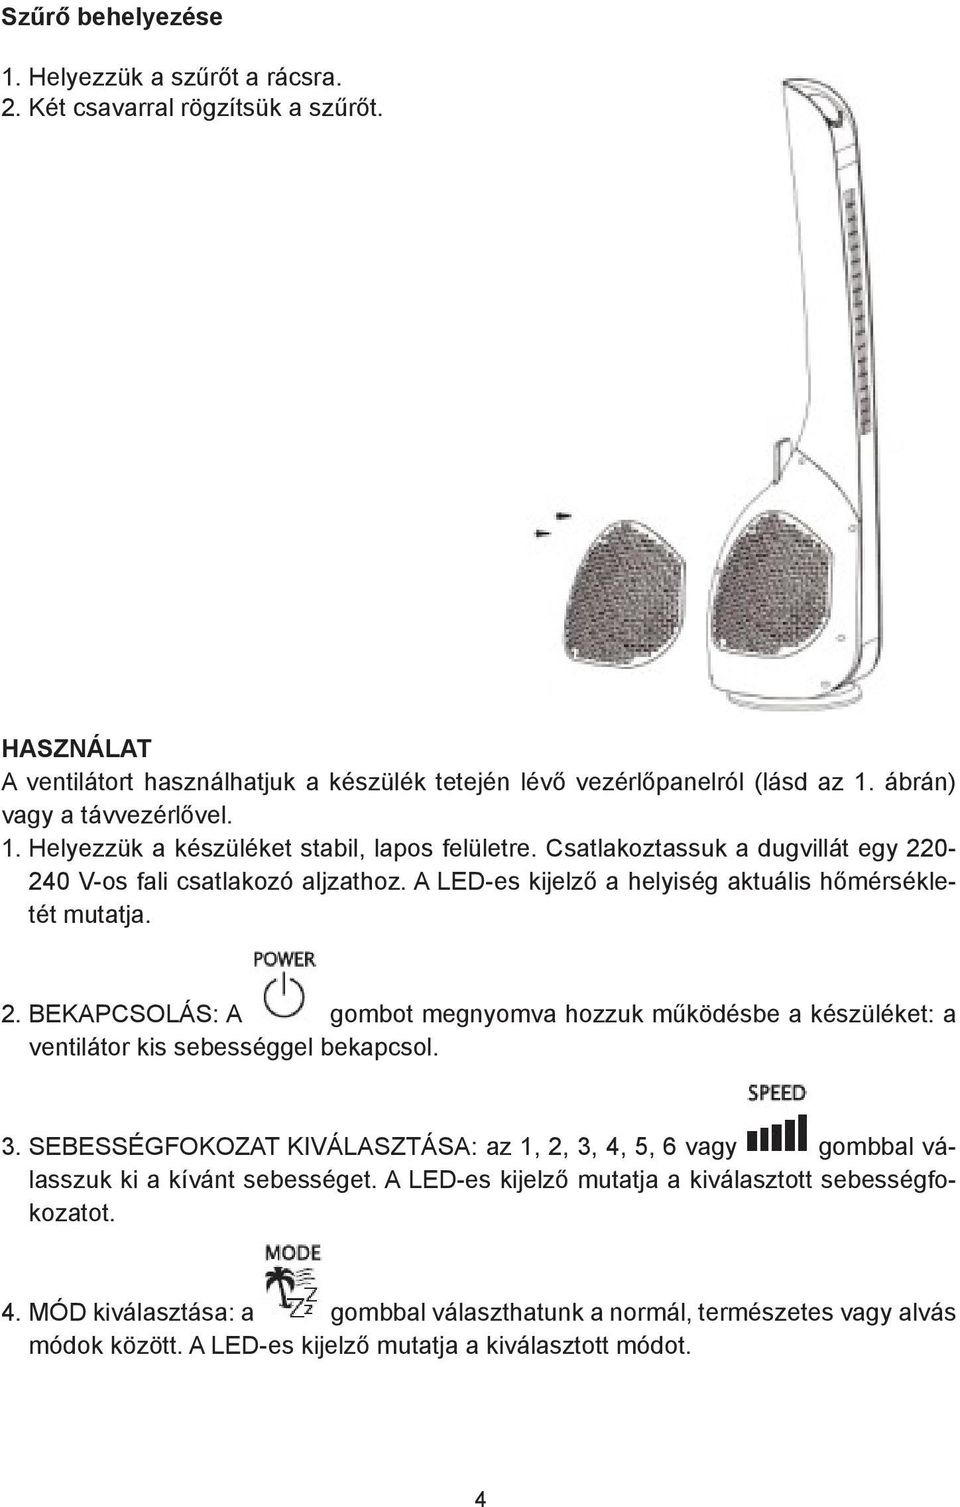 opeation: opeation: the fan may be operated by the c perated Használat by the control panel located on top of the fan (as the A ventilátort fan may használhatjuk be operated a készülék by the control